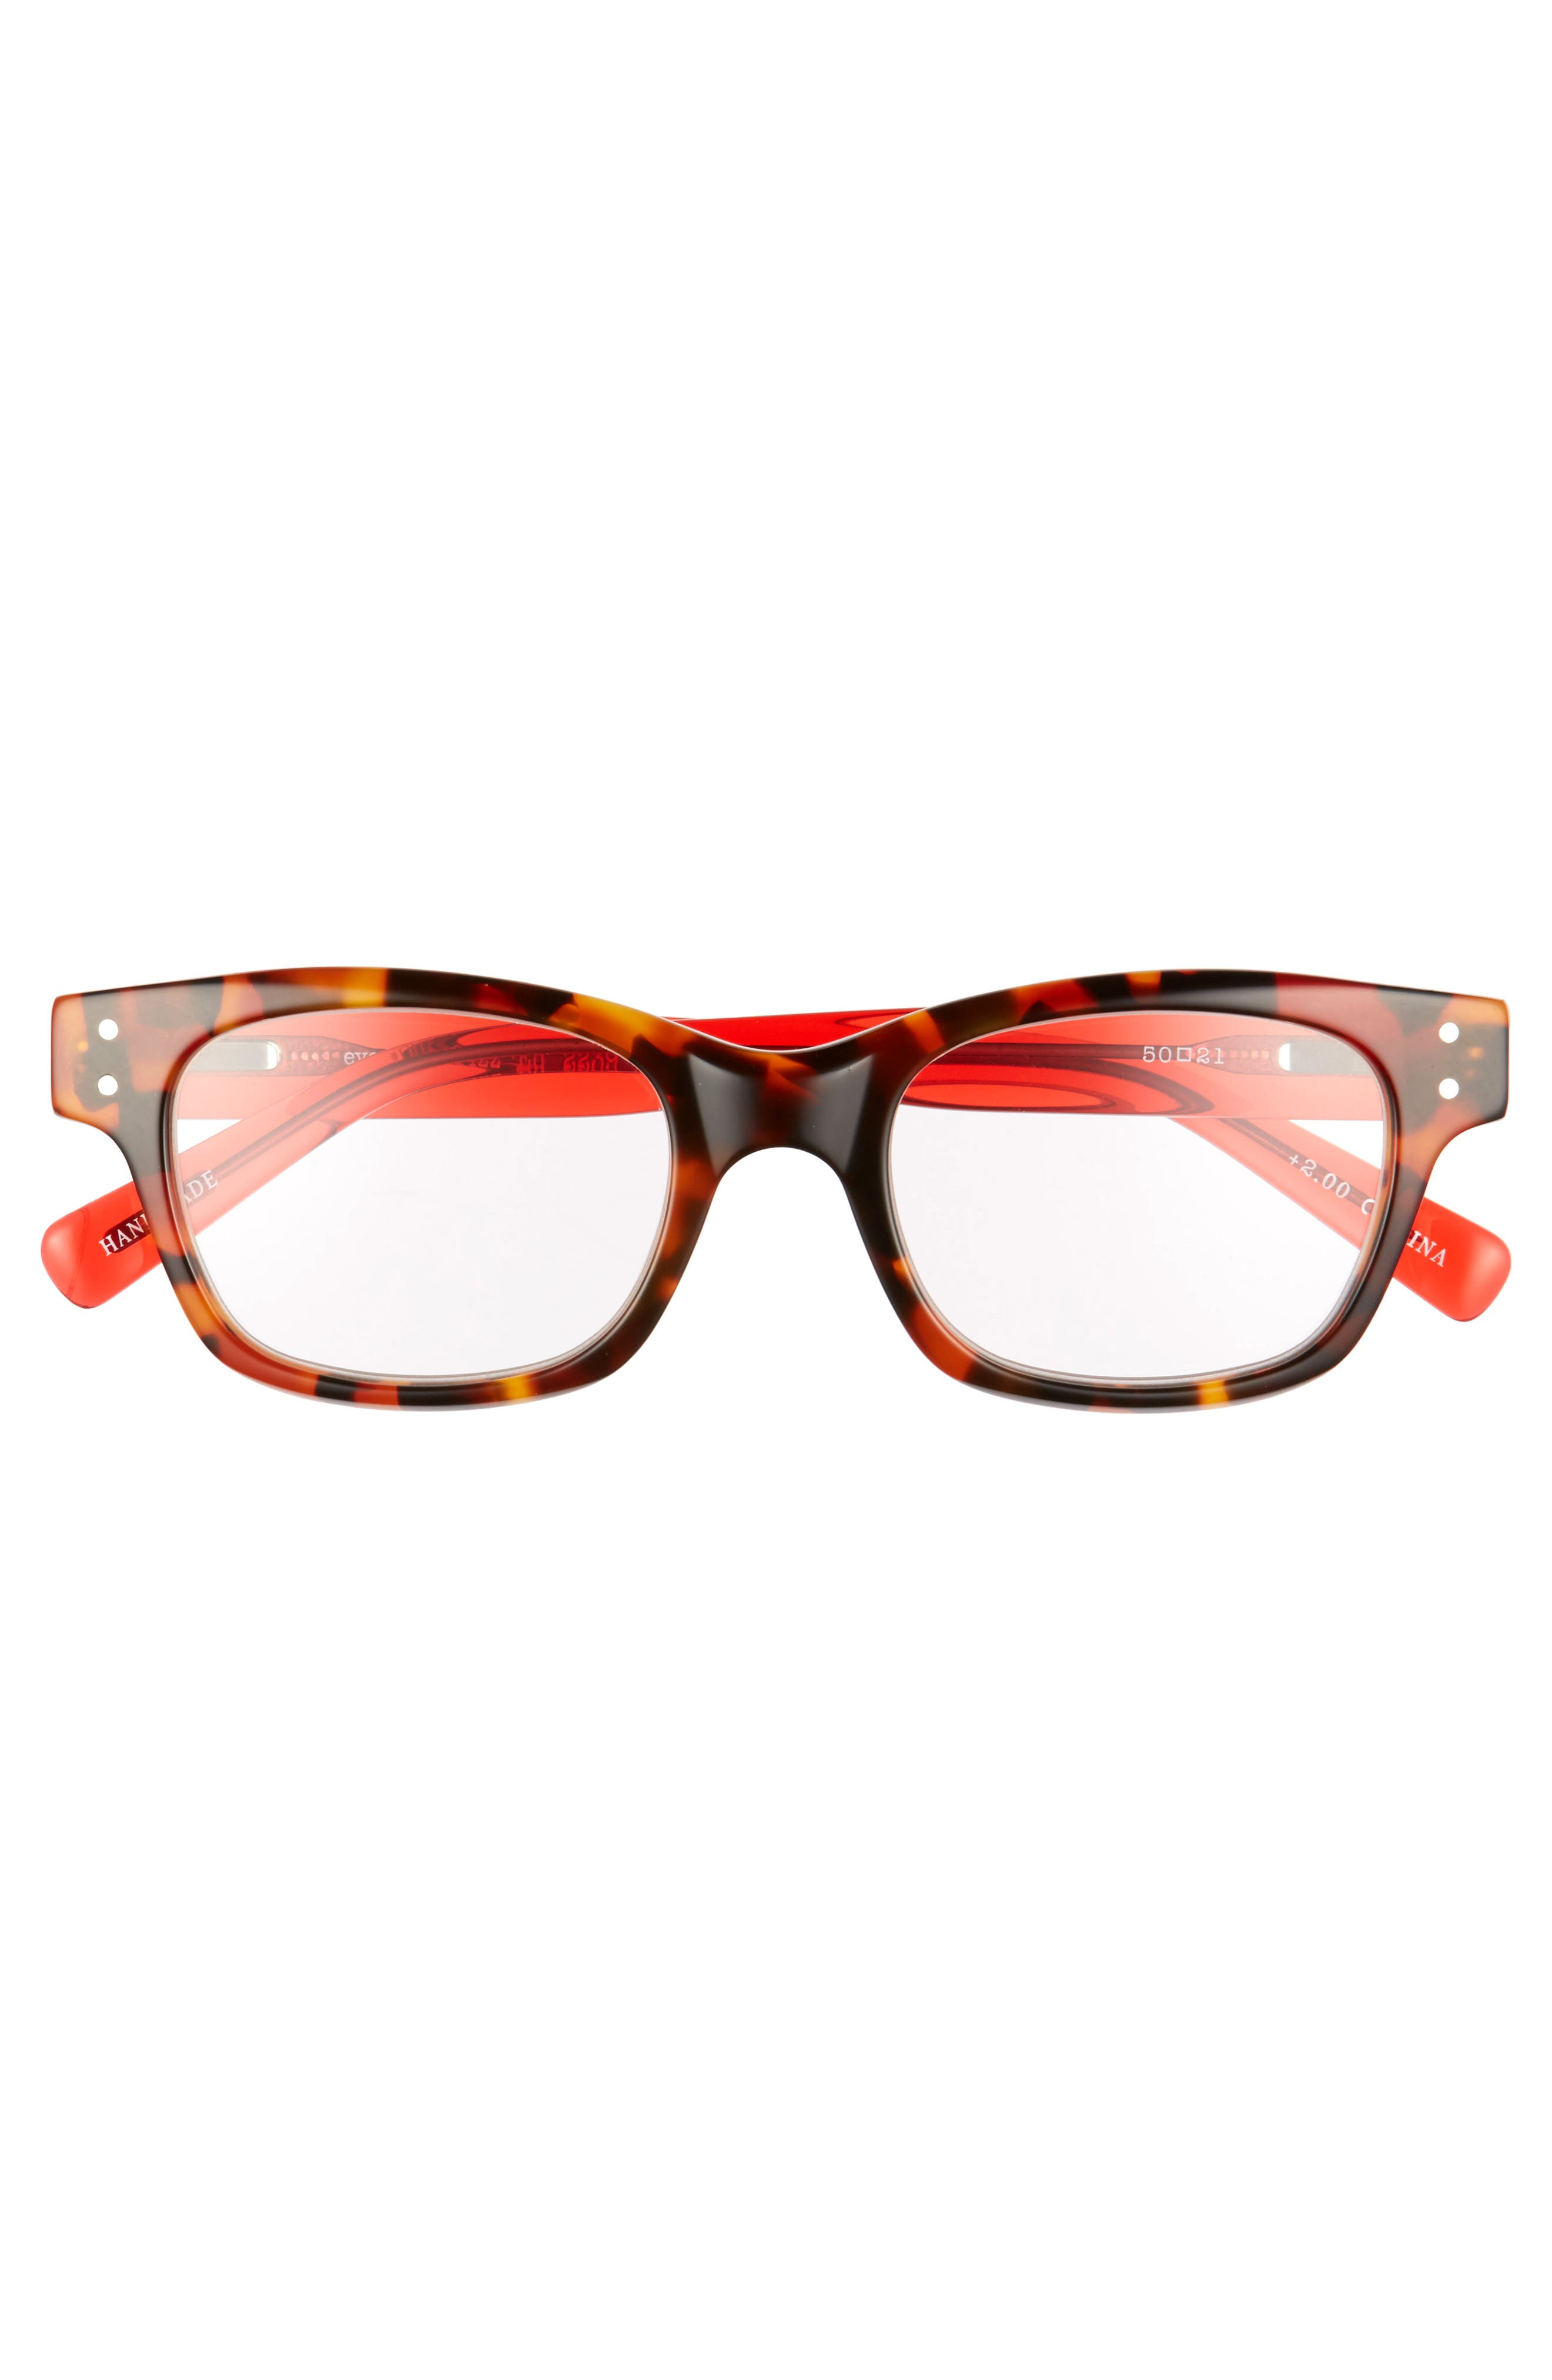 EYEBOBS,                             Fizz Ed 50mm Reading Glasses,                             Alternate thumbnail 2, color,                             TORTOISE WITH RED